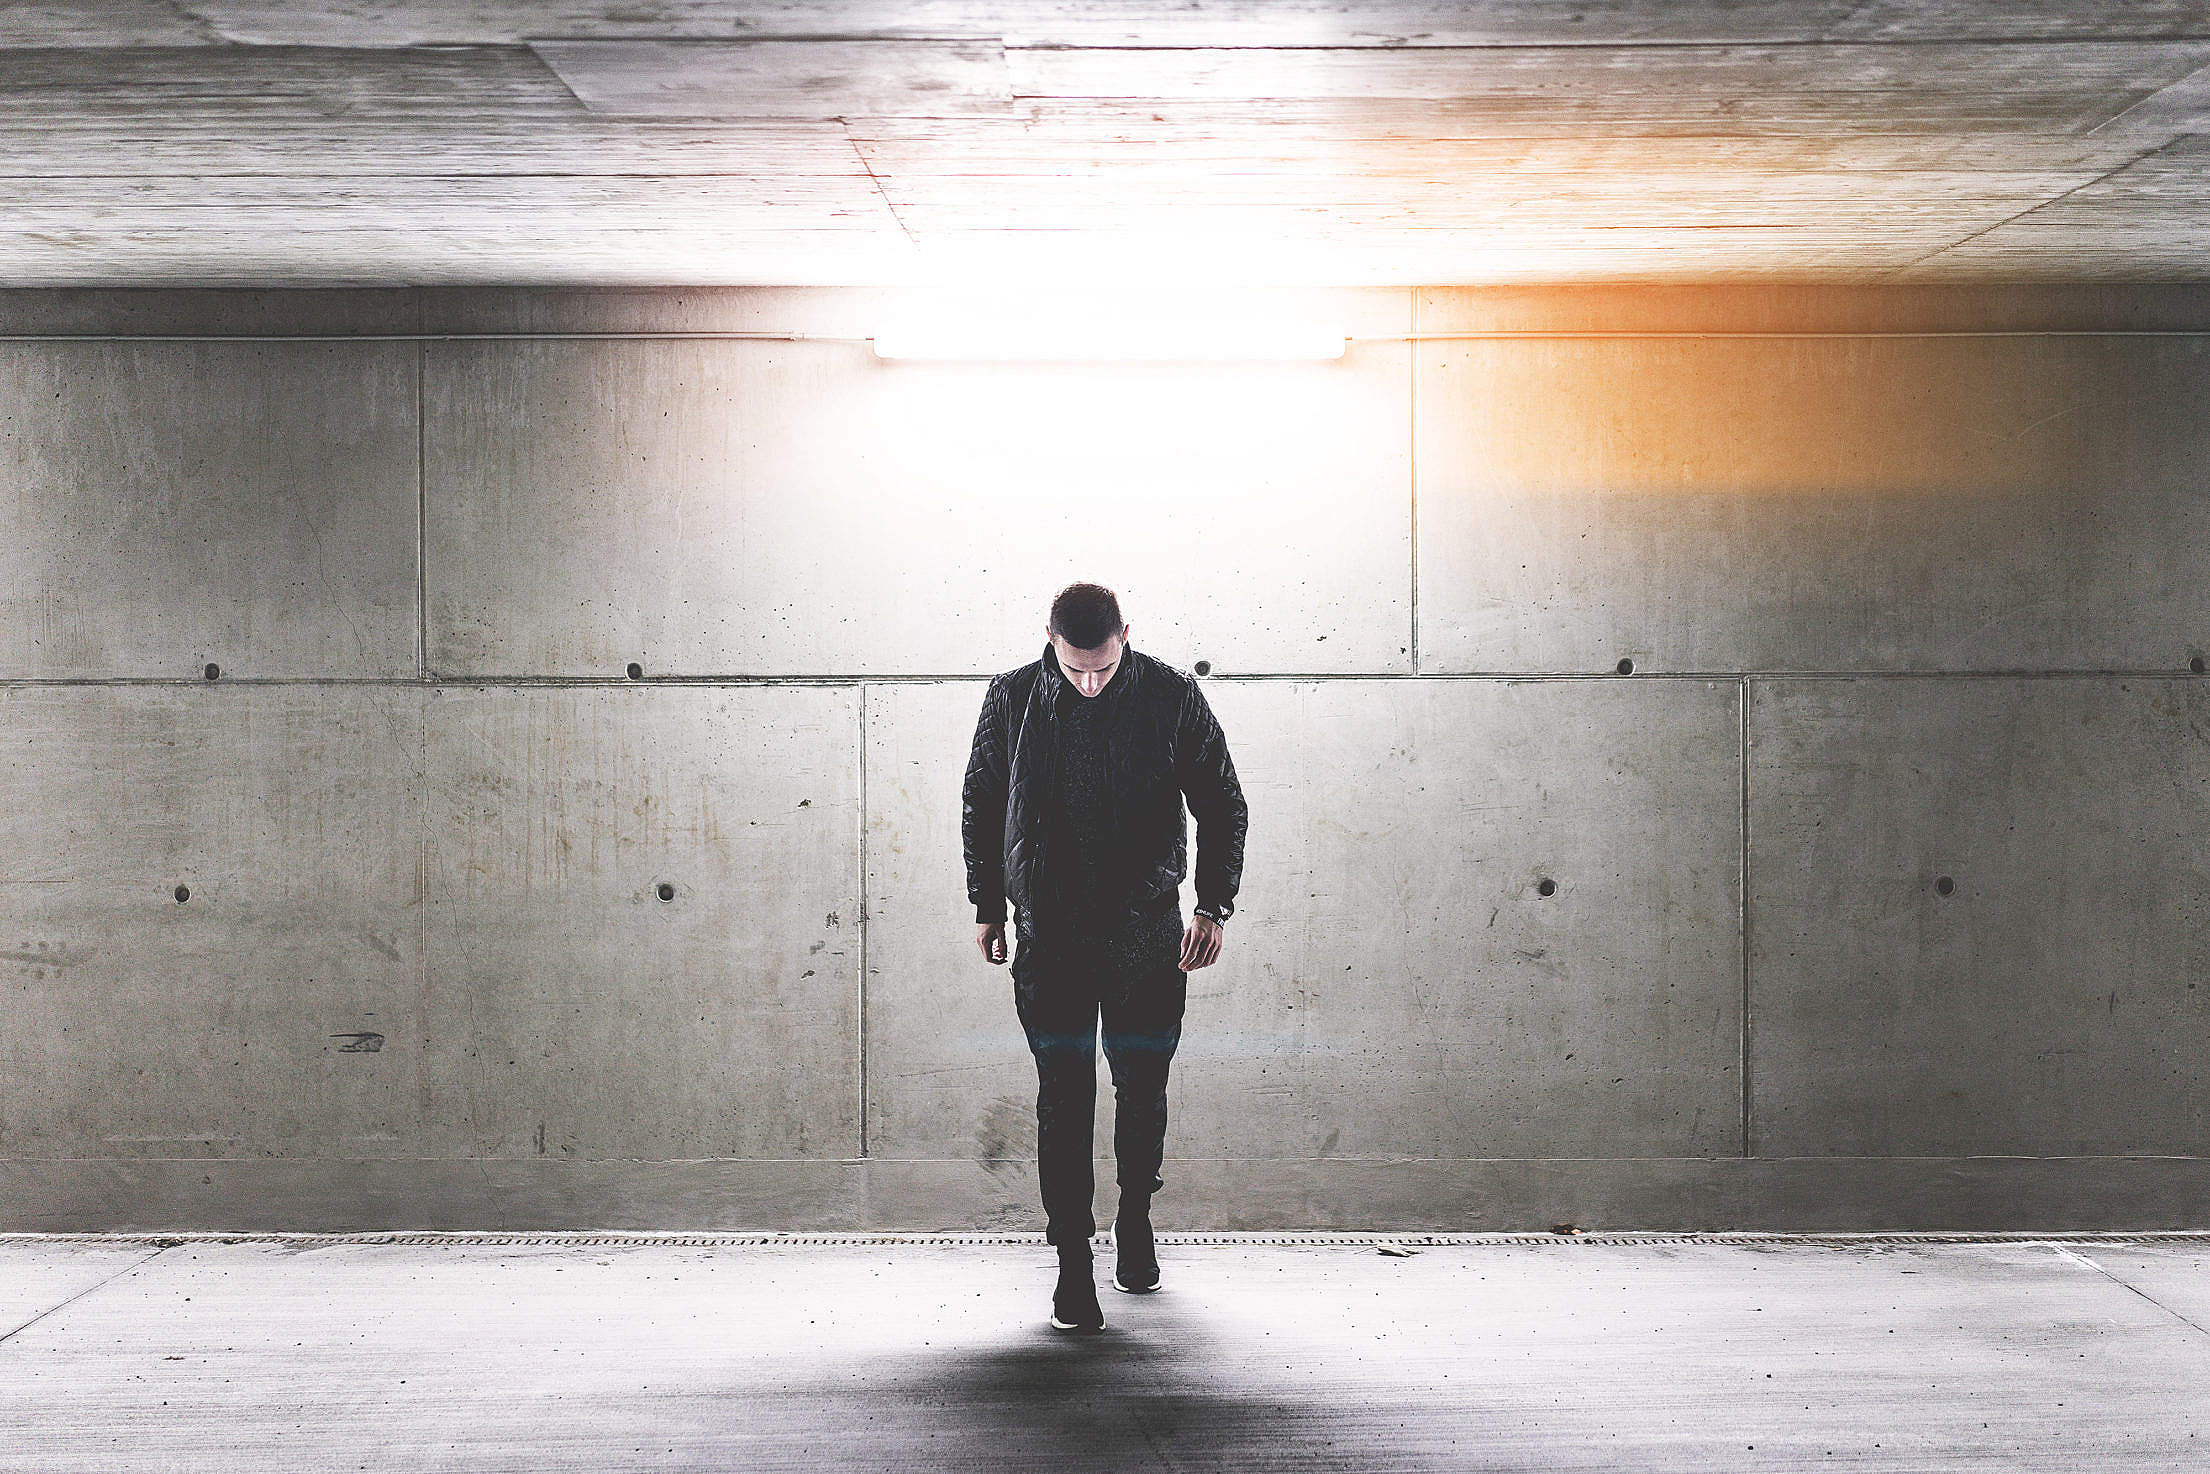 Young Man Walking in Conrete Underground Walkway Free Stock Photo